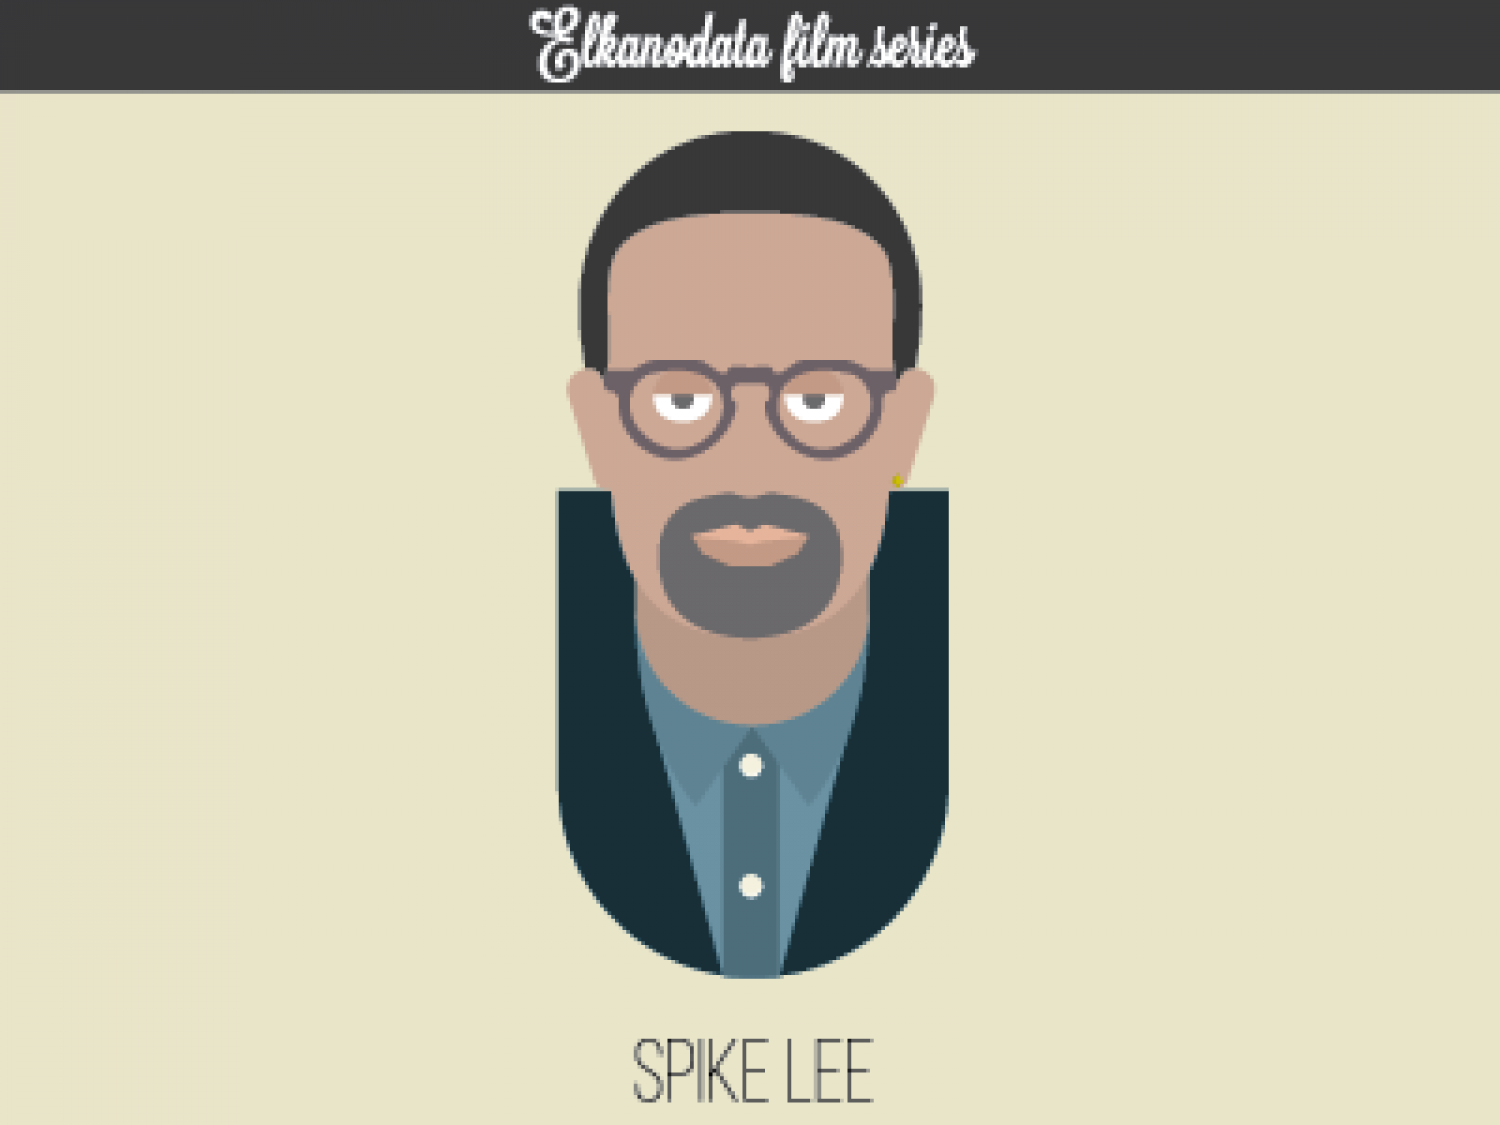 Quintessential Quotes From Cult Film Directors: Spike Lee Infographic